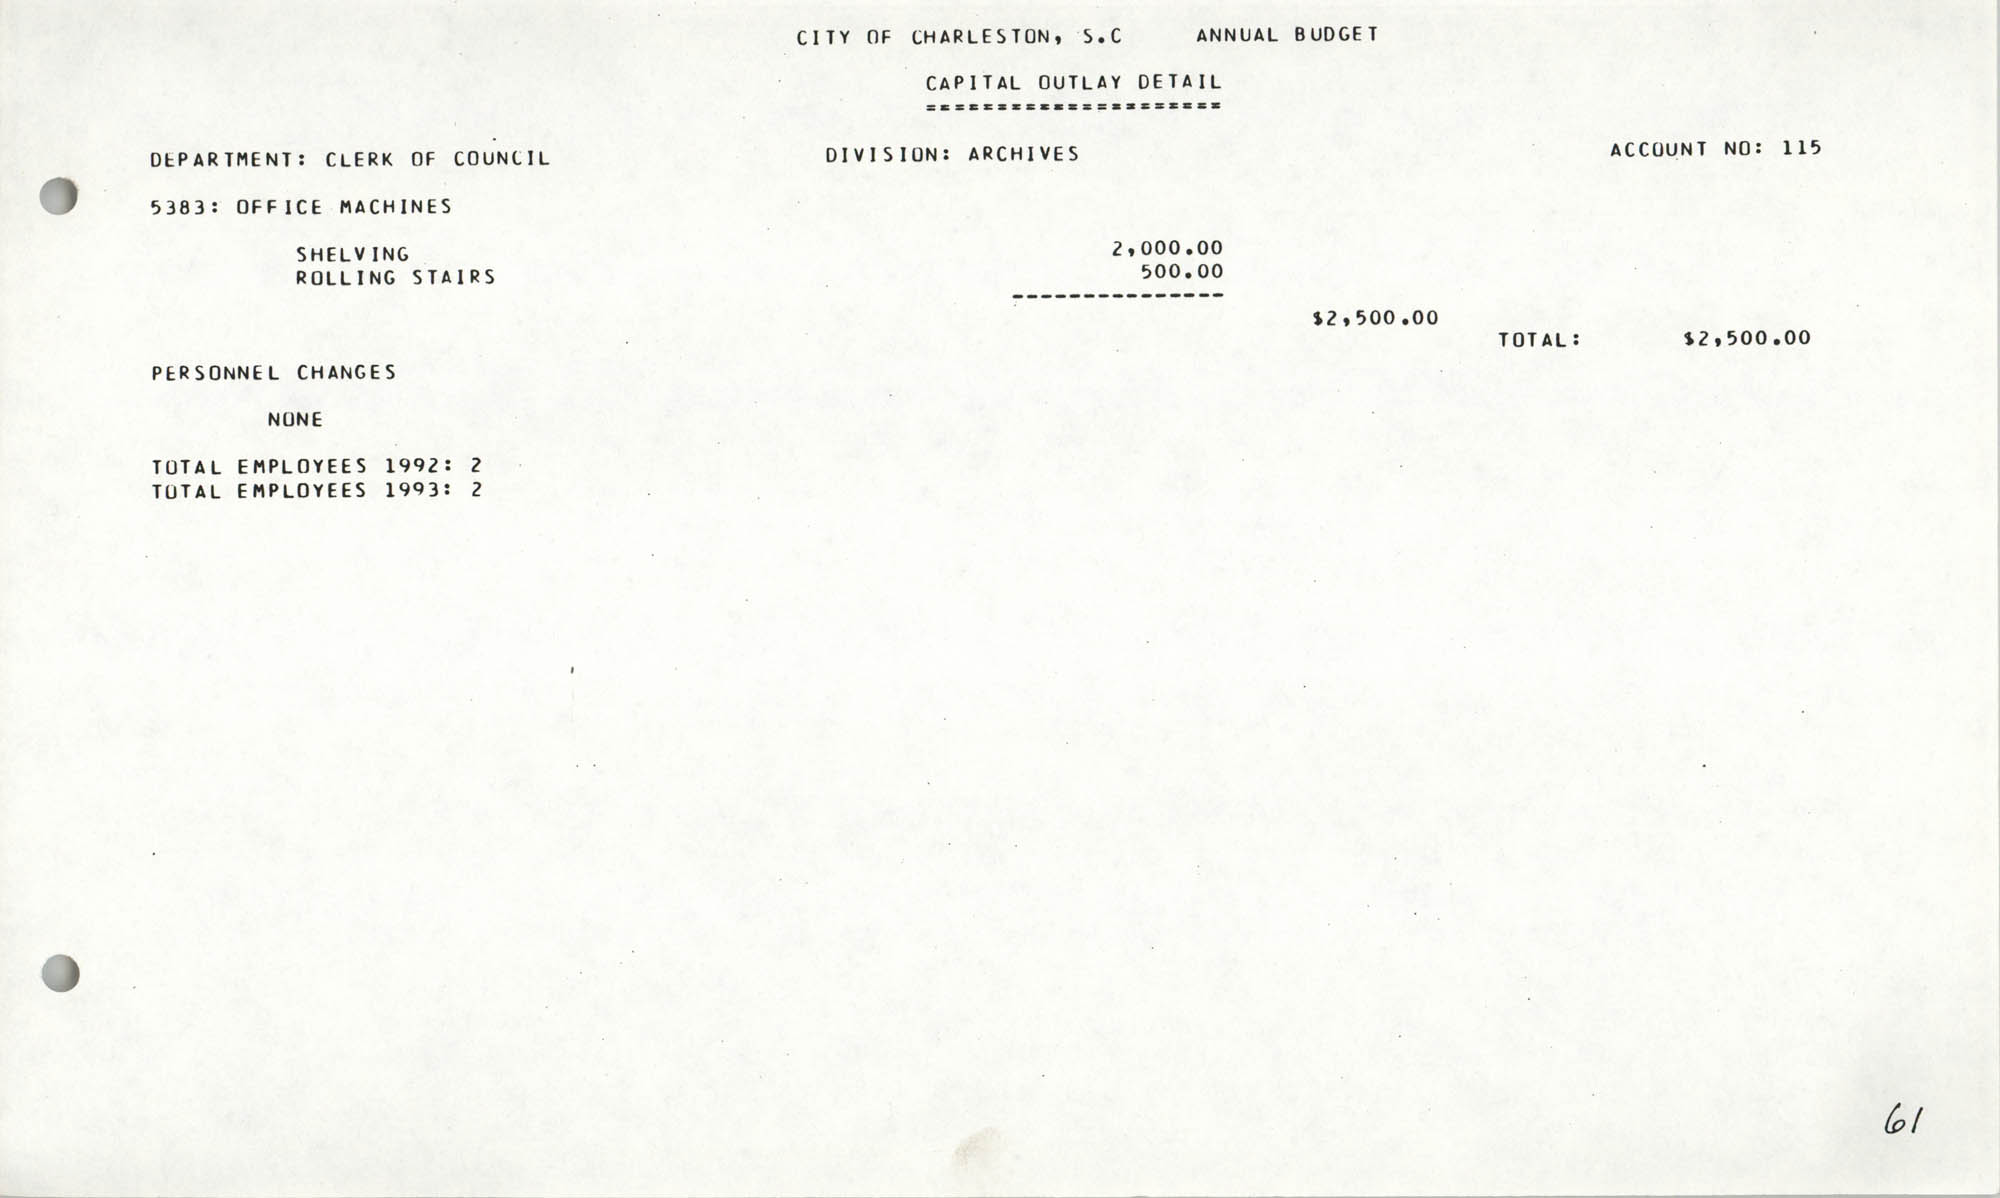 The City Council of Charleston, South Carolina, 1993 Budget, Page 61